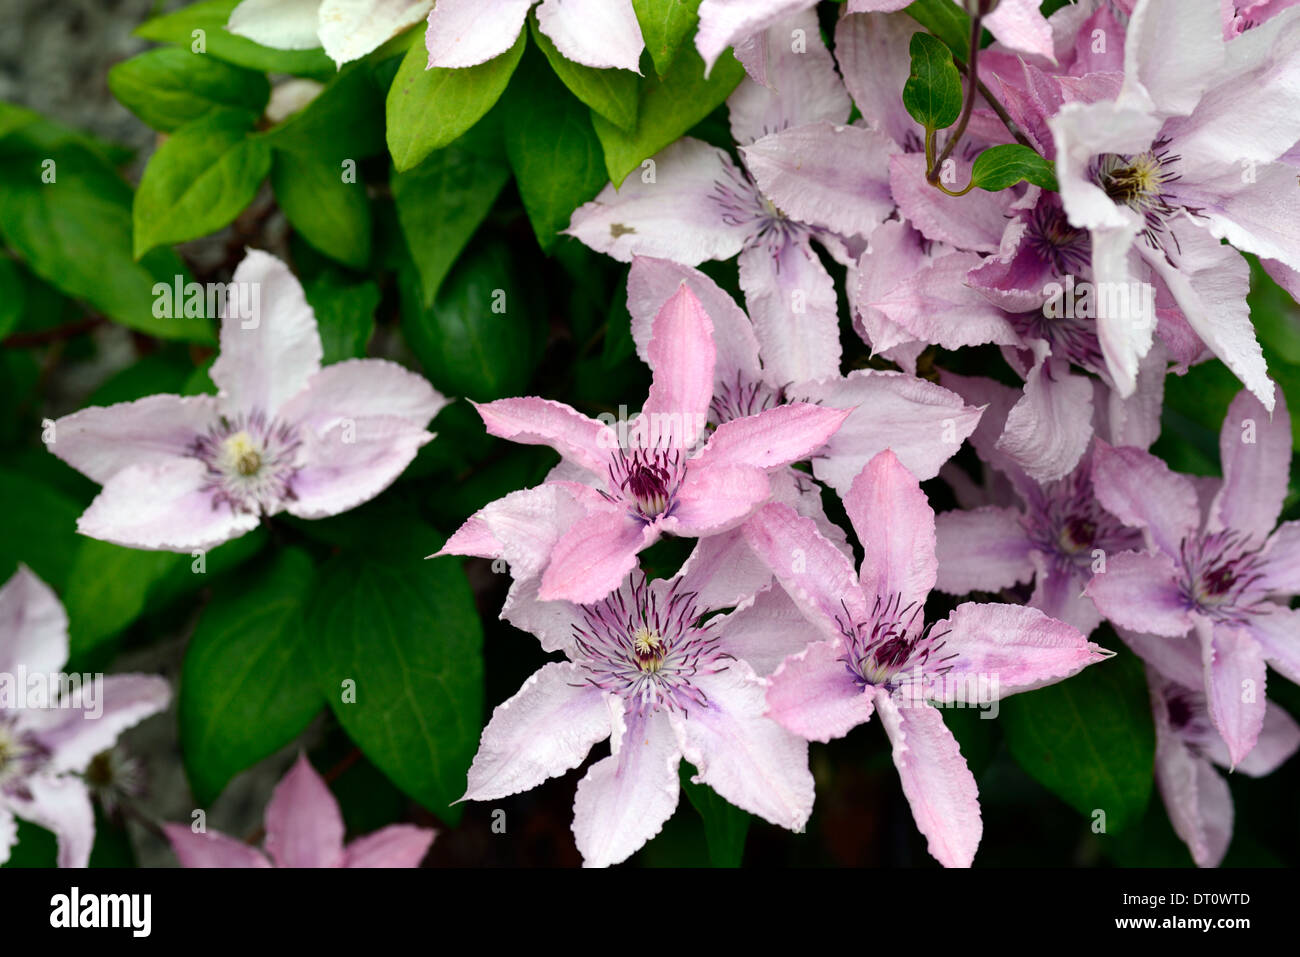 Clematis Hagley Hybrid Dusky Pink Flowers Climbers Climbing Shrubs